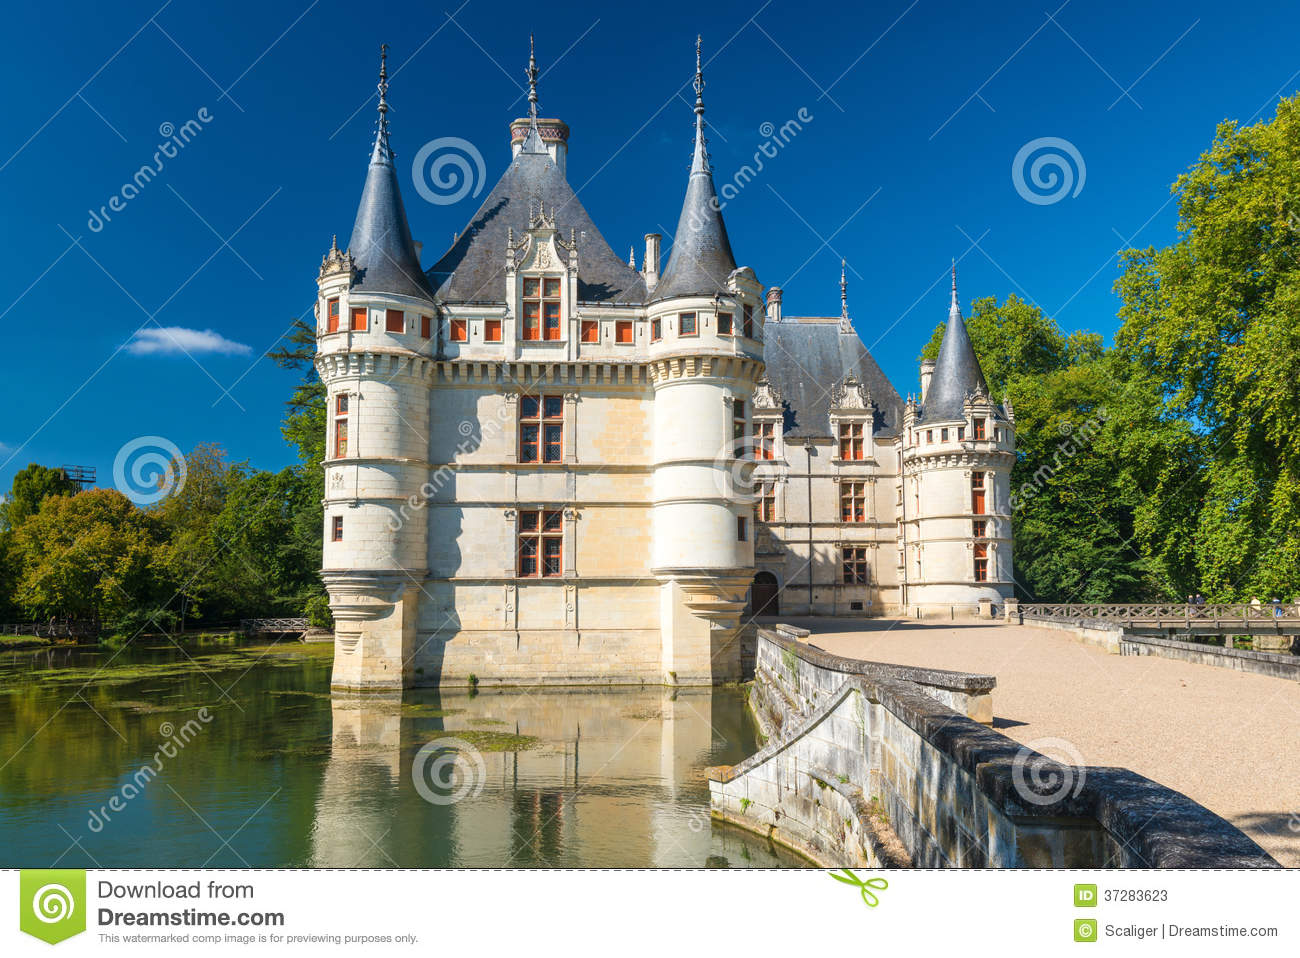 the chateau de azay le rideau france stock image image of attraction france 37283623. Black Bedroom Furniture Sets. Home Design Ideas